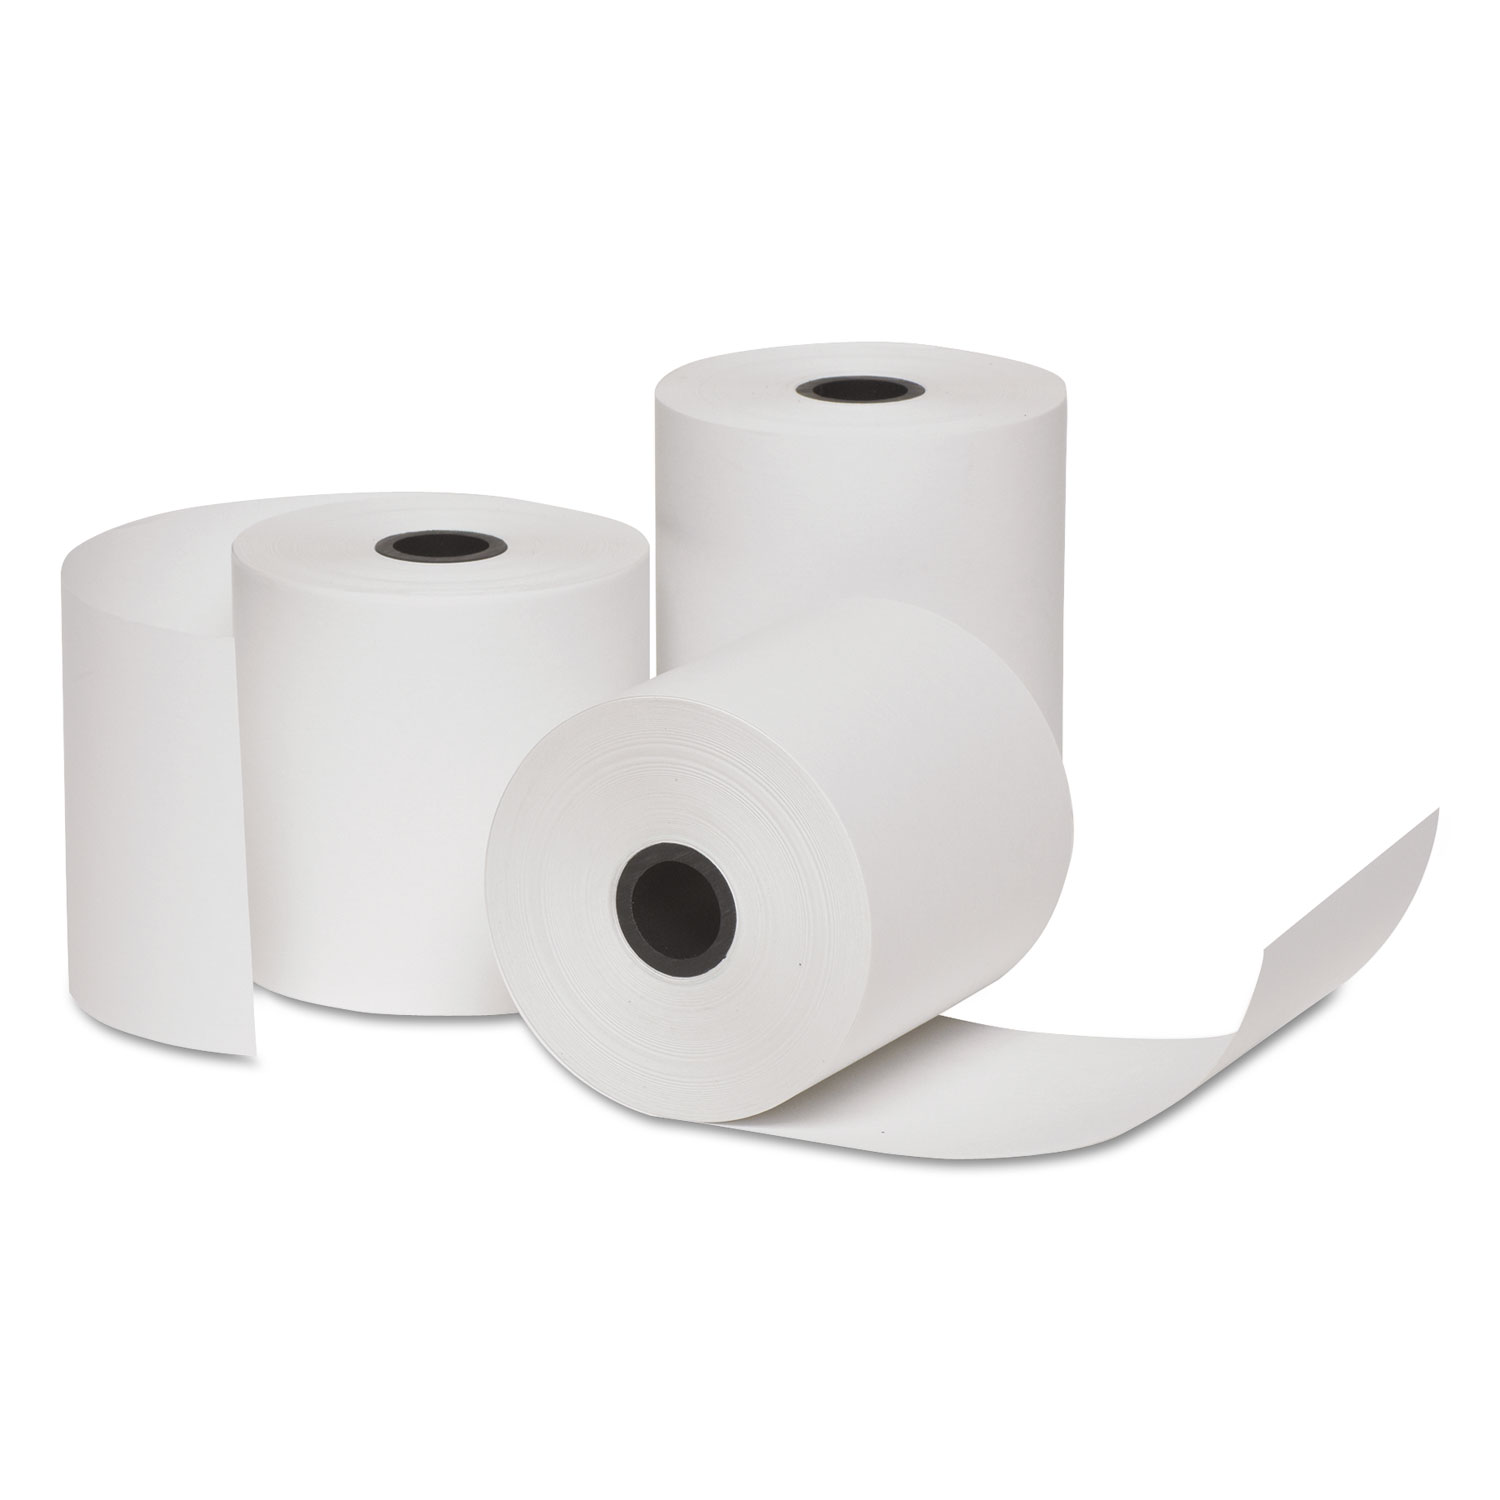 Deluxe Direct Thermal Printing Paper Rolls, 2 3/4 x 128 ft, 10 Rolls/PK